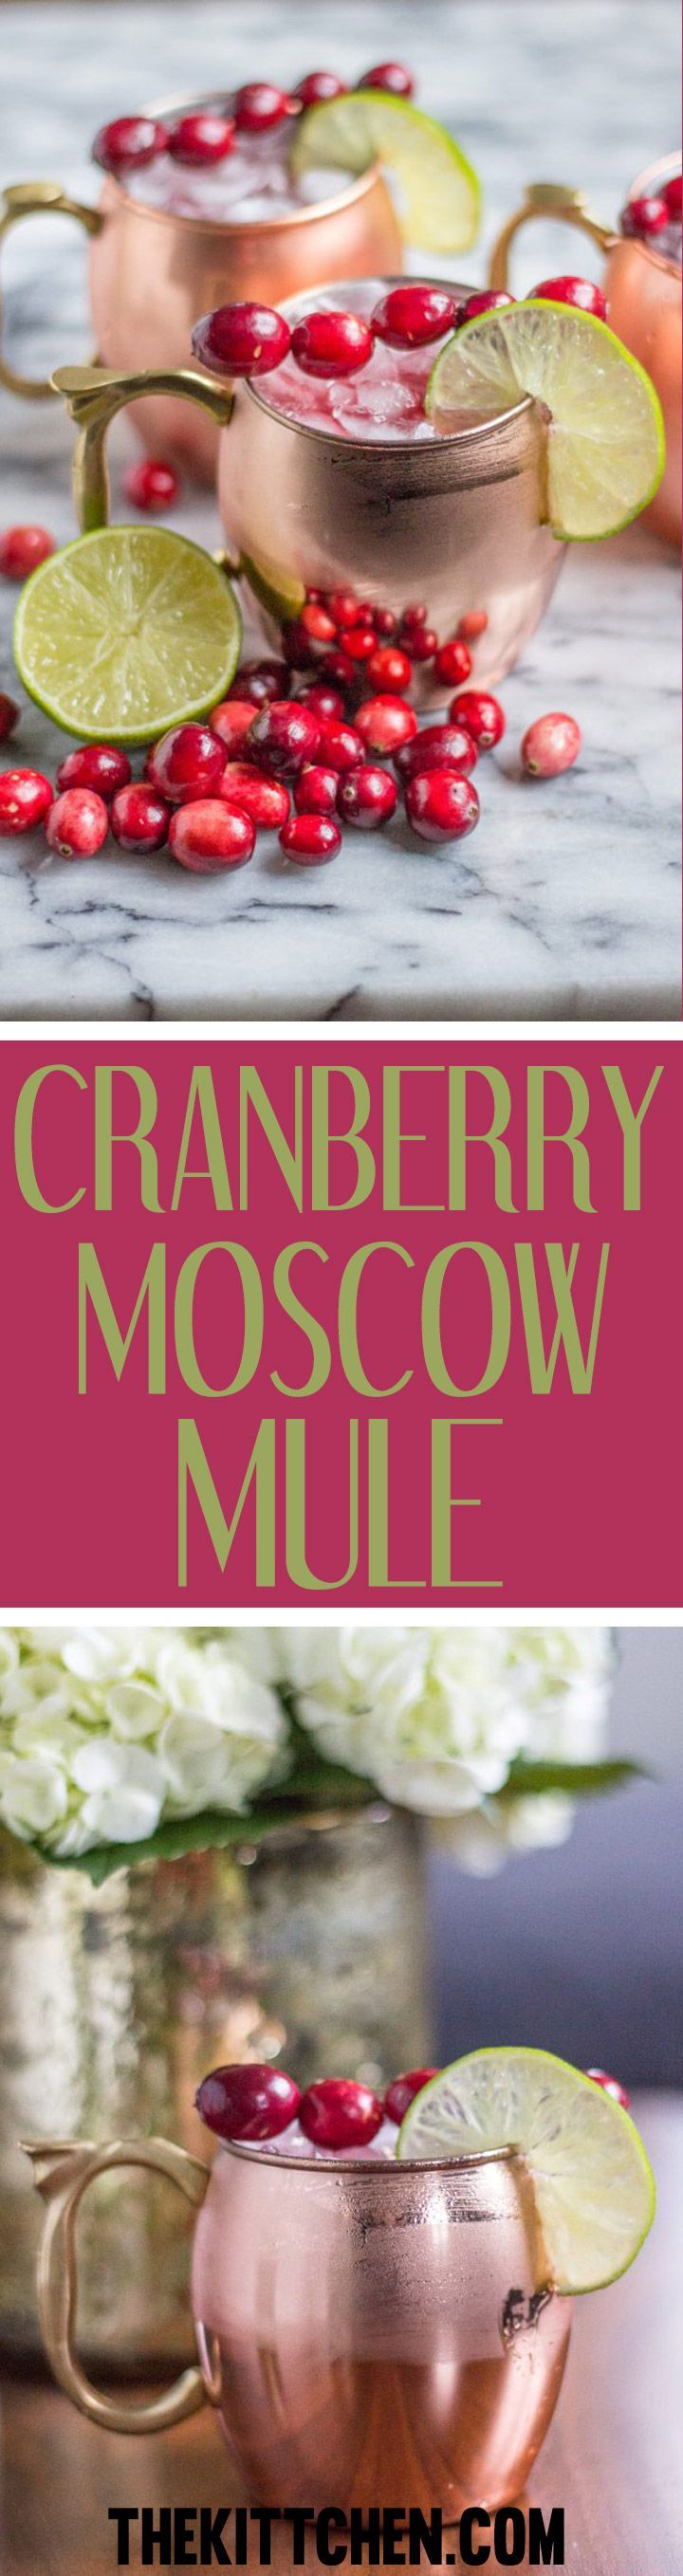 Cranberry Moscow Mule Recipe This Cranberry Moscow Mule Is Perfectly On Trend And Fes In 2020 Holiday Drinks Alcohol Holiday Drinks Christmas Winter Drinks Alcoholic